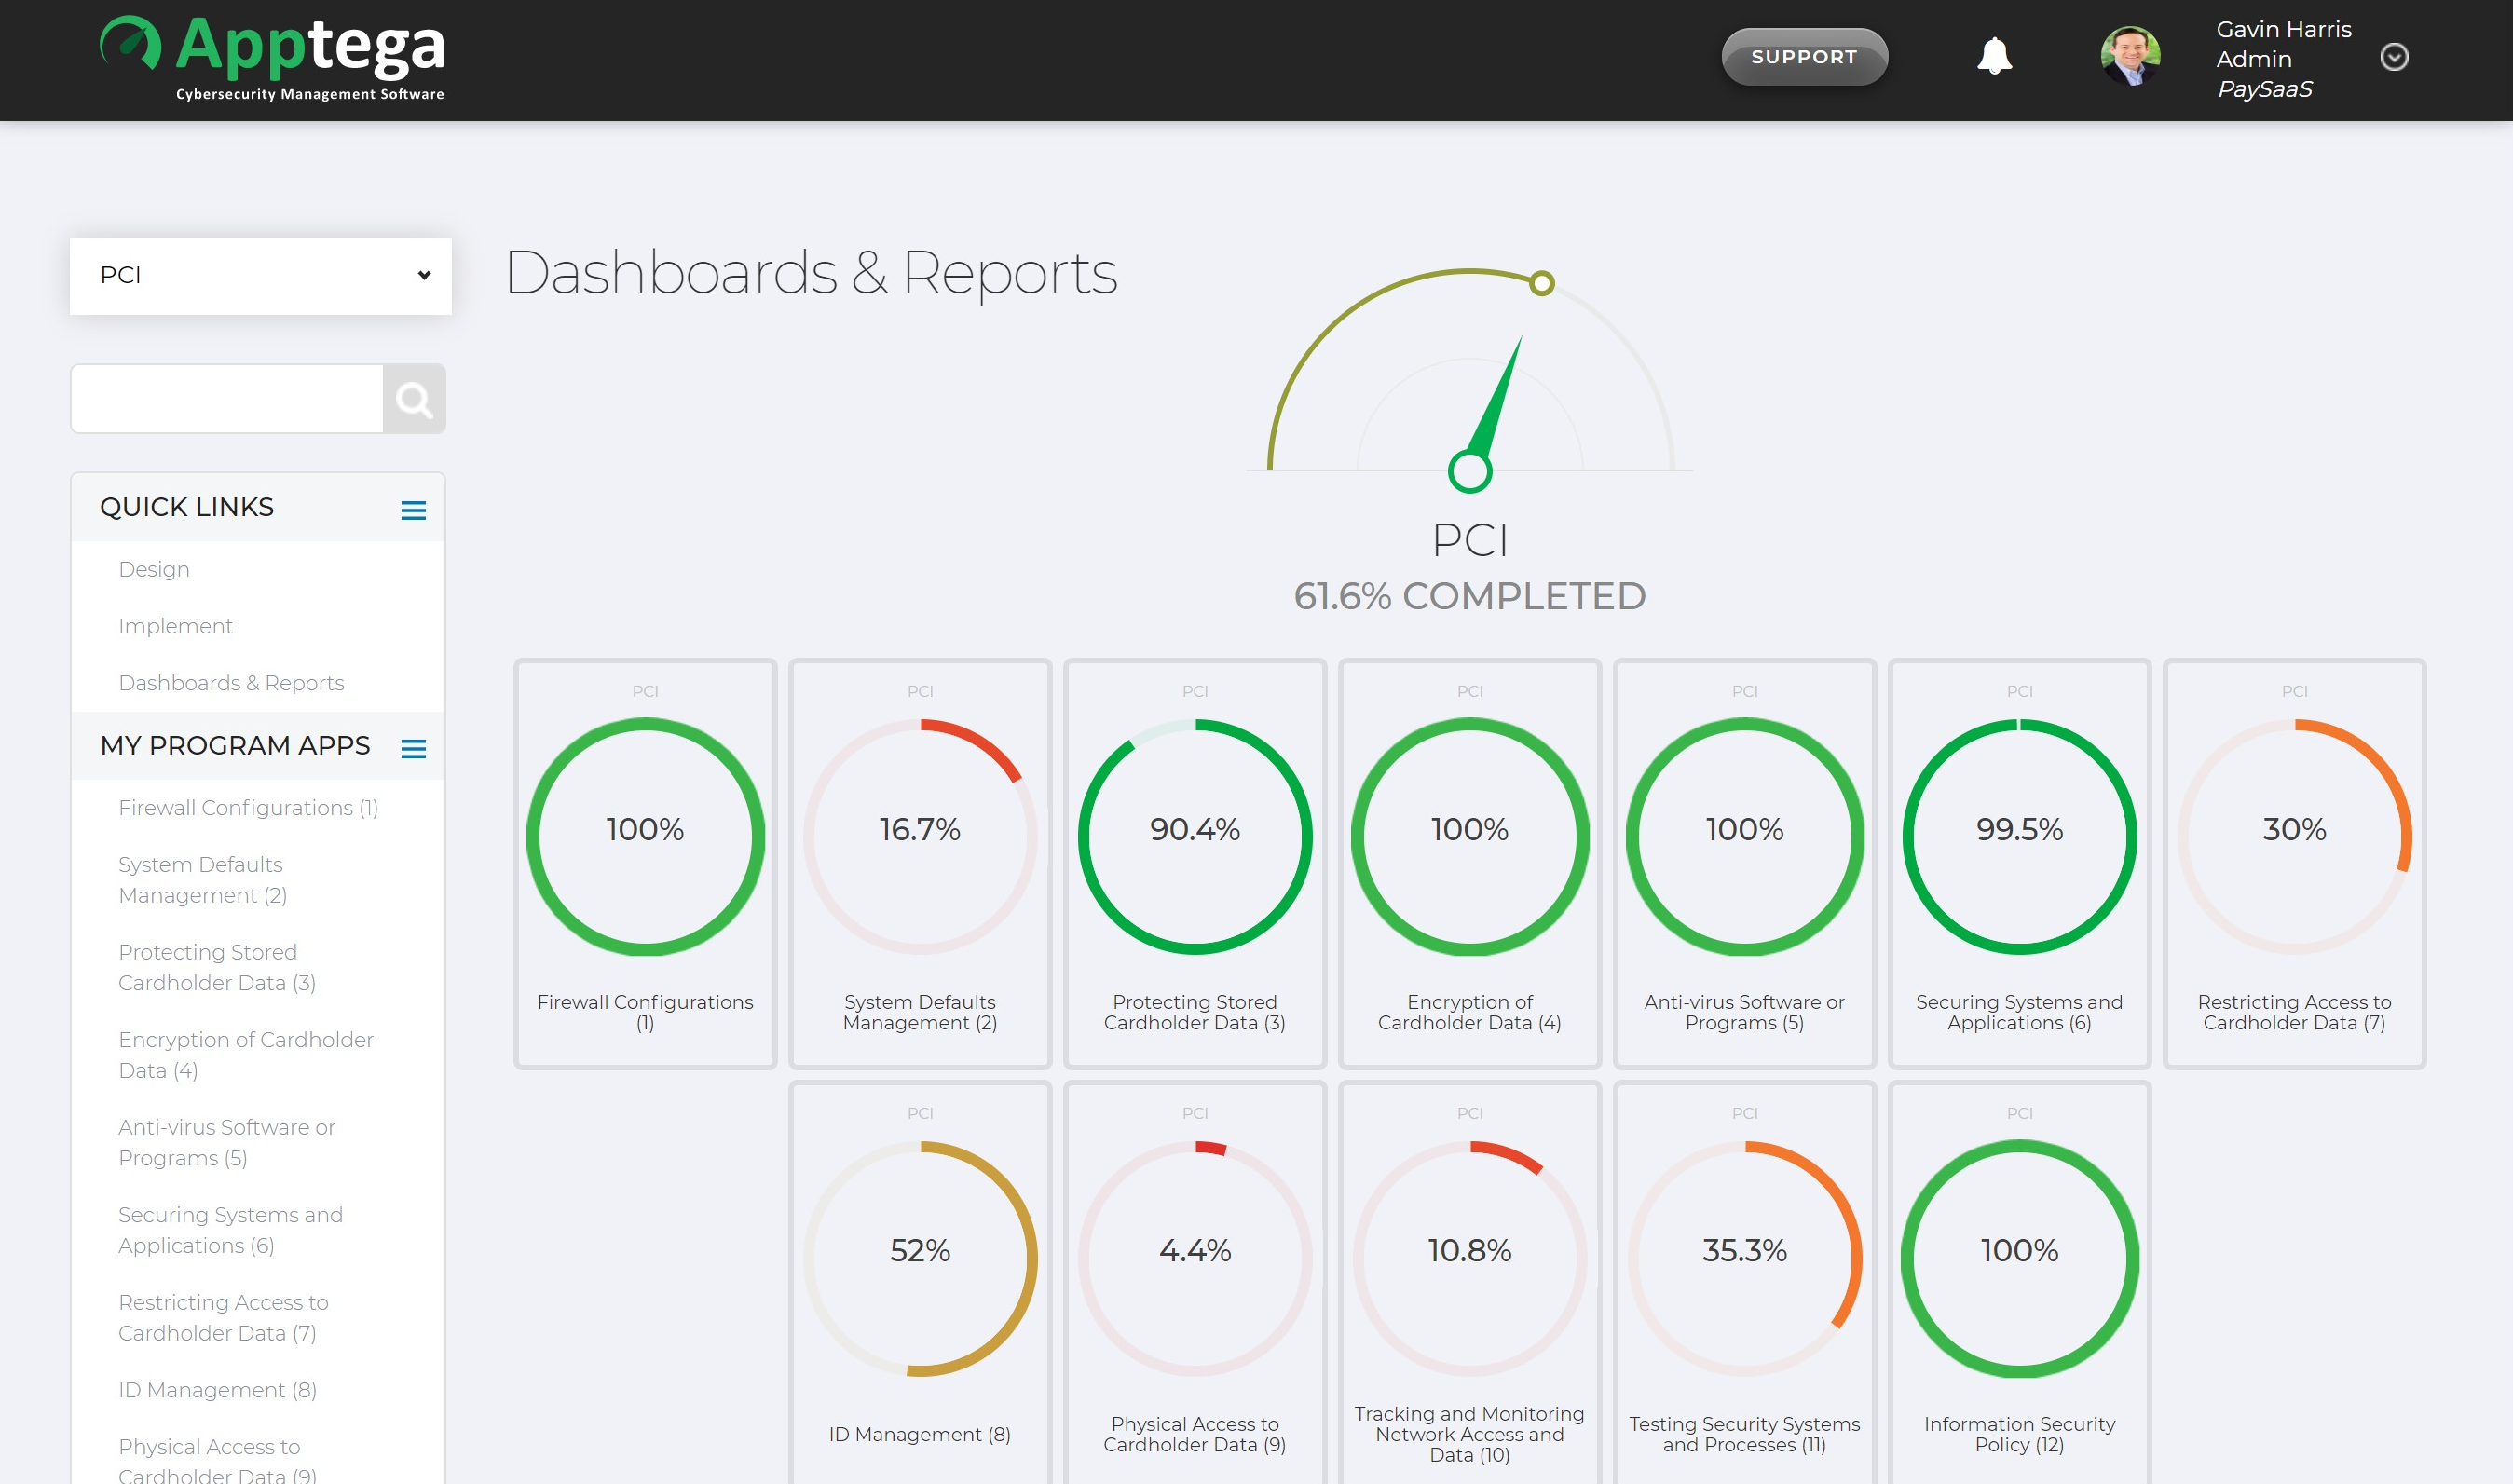 PCI Dashboard with Dials